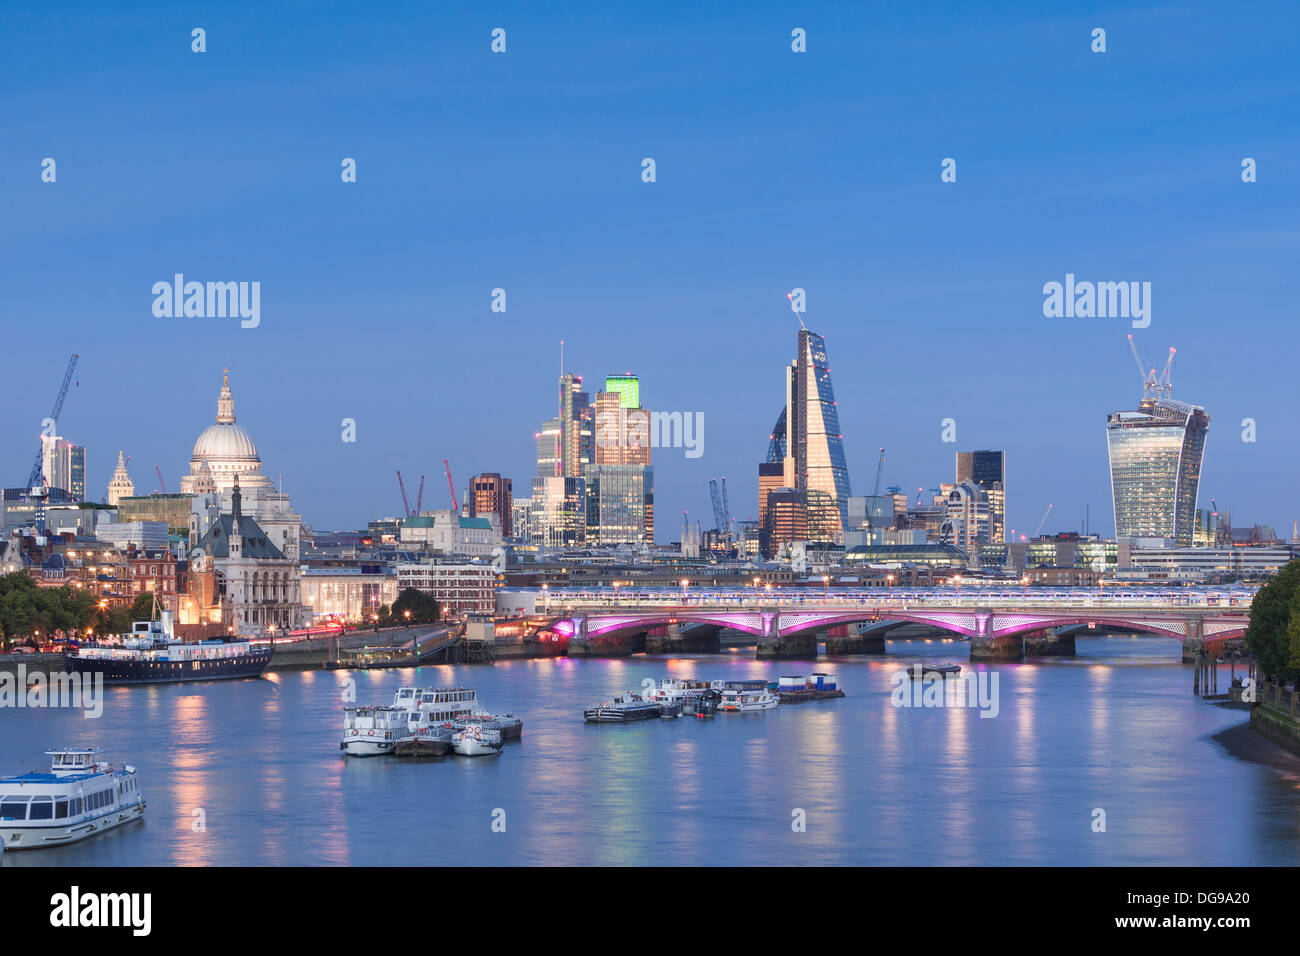 London skyline and river Thames at dusk, London, England - Stock Image